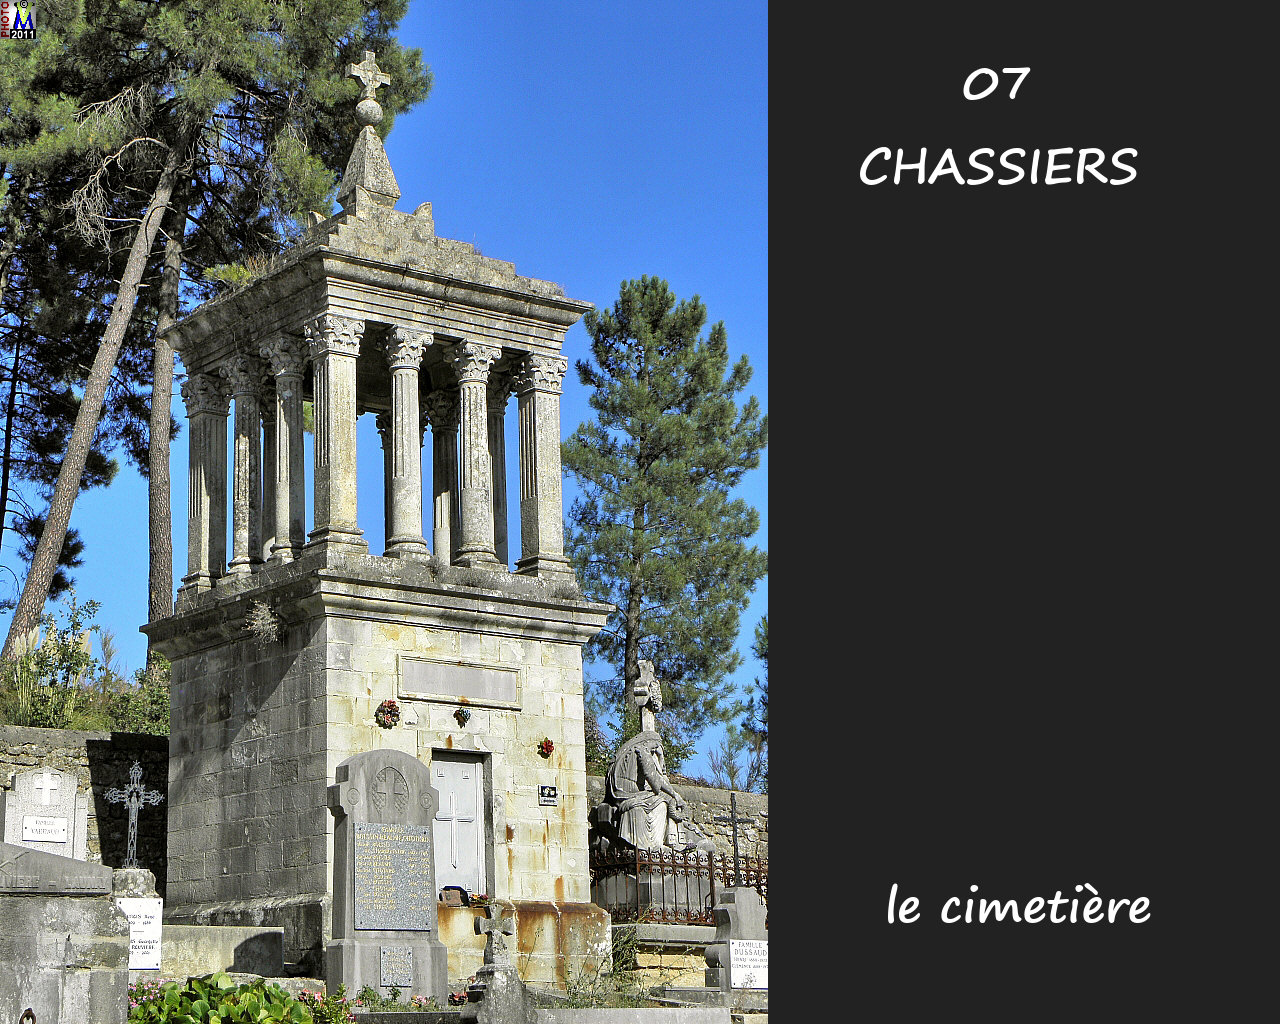 07CHASSIERS_cimetiere_100.jpg